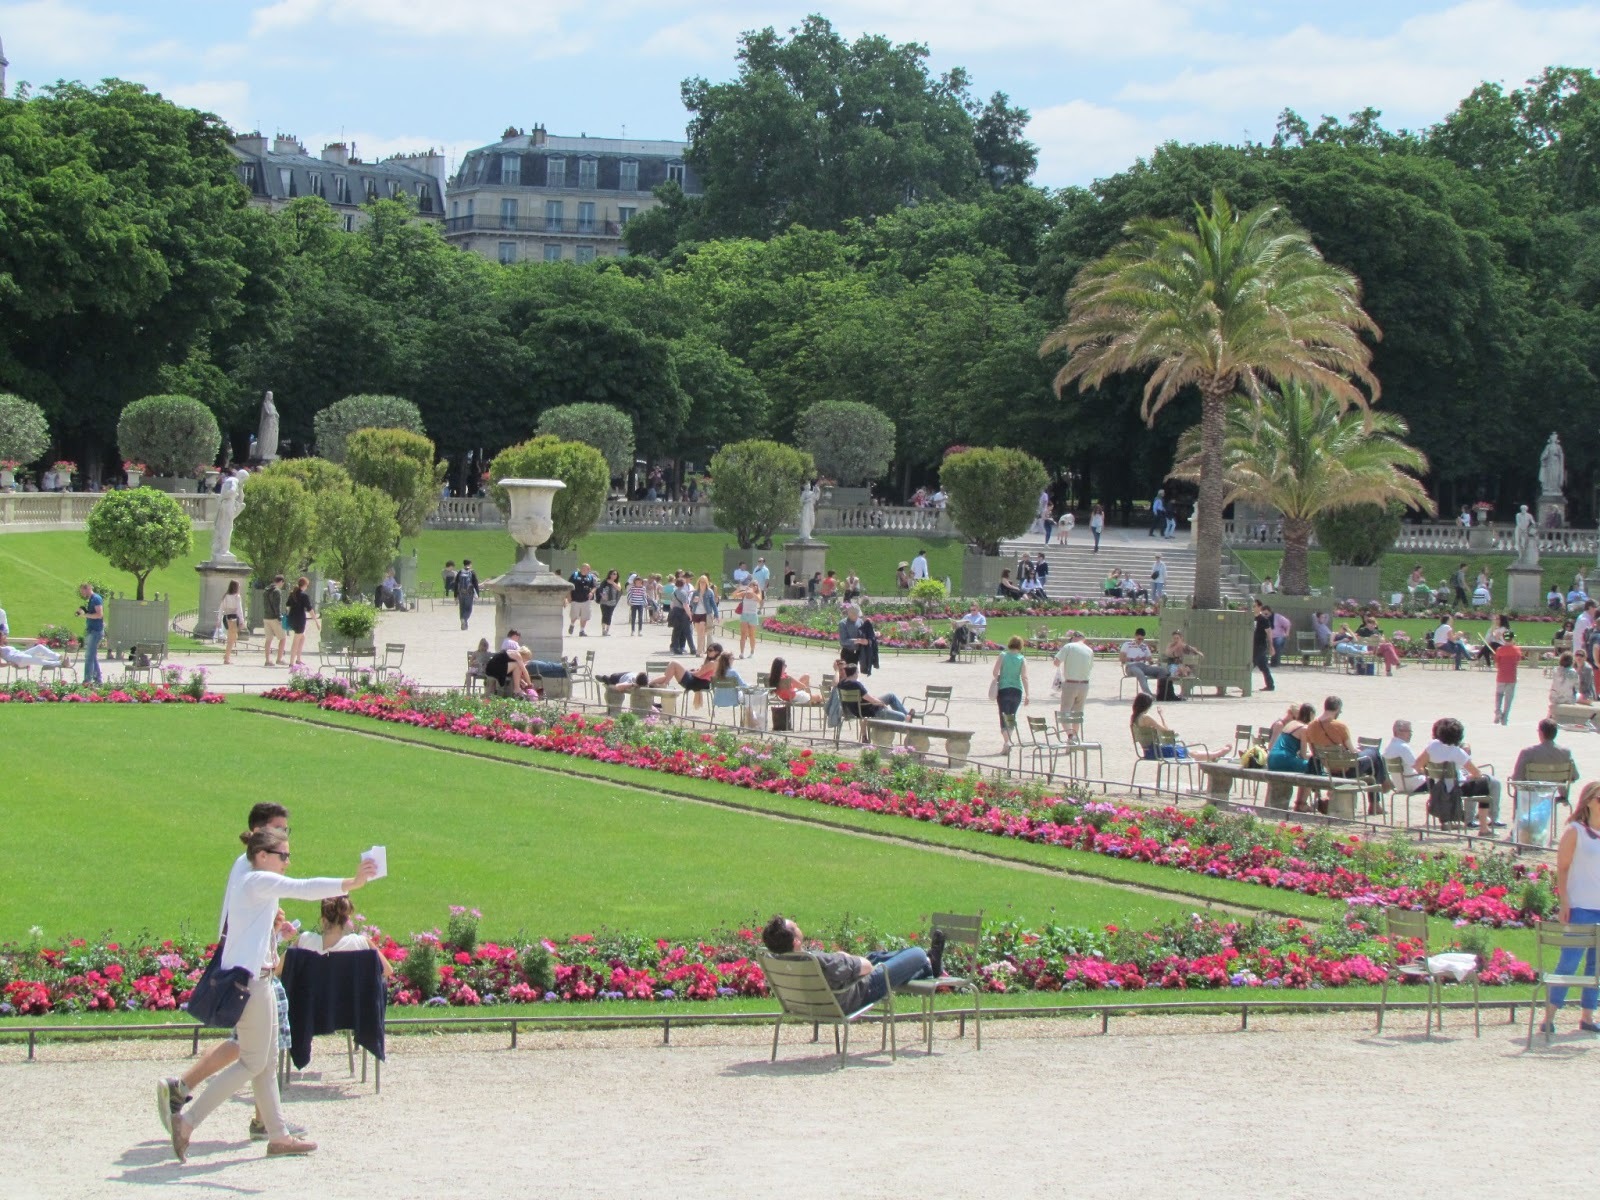 Feast or famine images of the jardin du luxembourg paris for Jardin du luxembourg